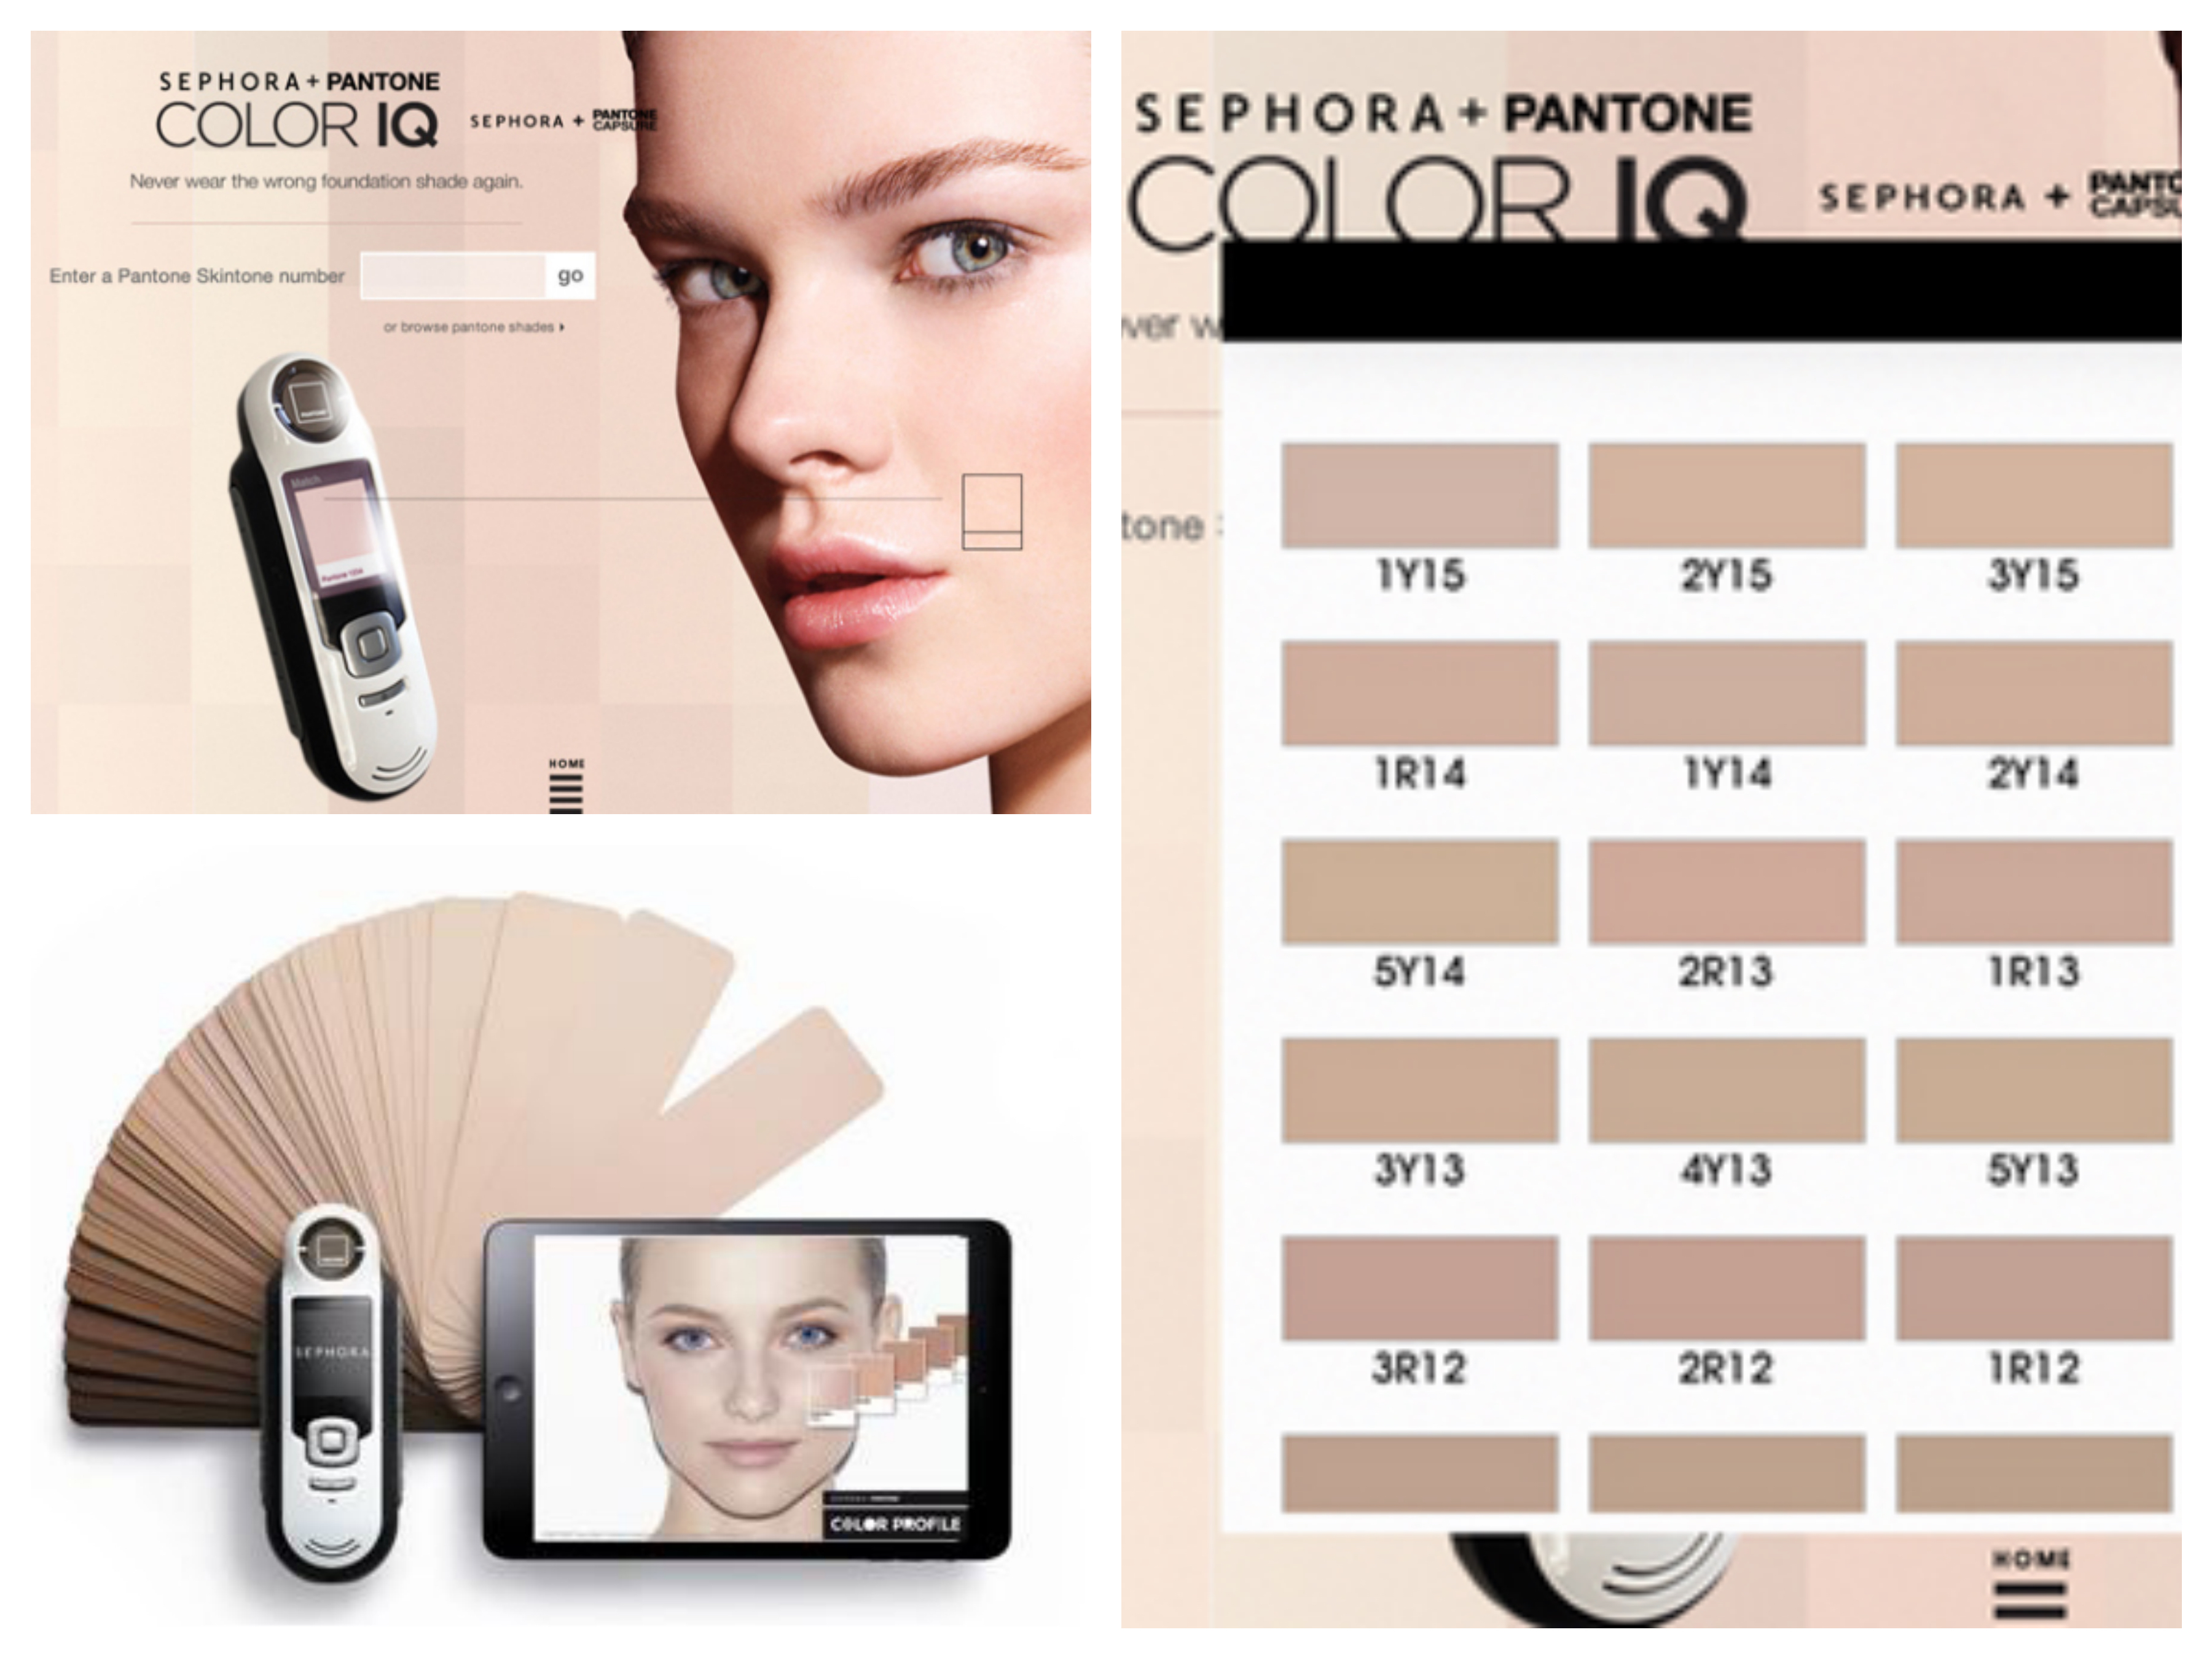 Color profile - Sephore + Pantone